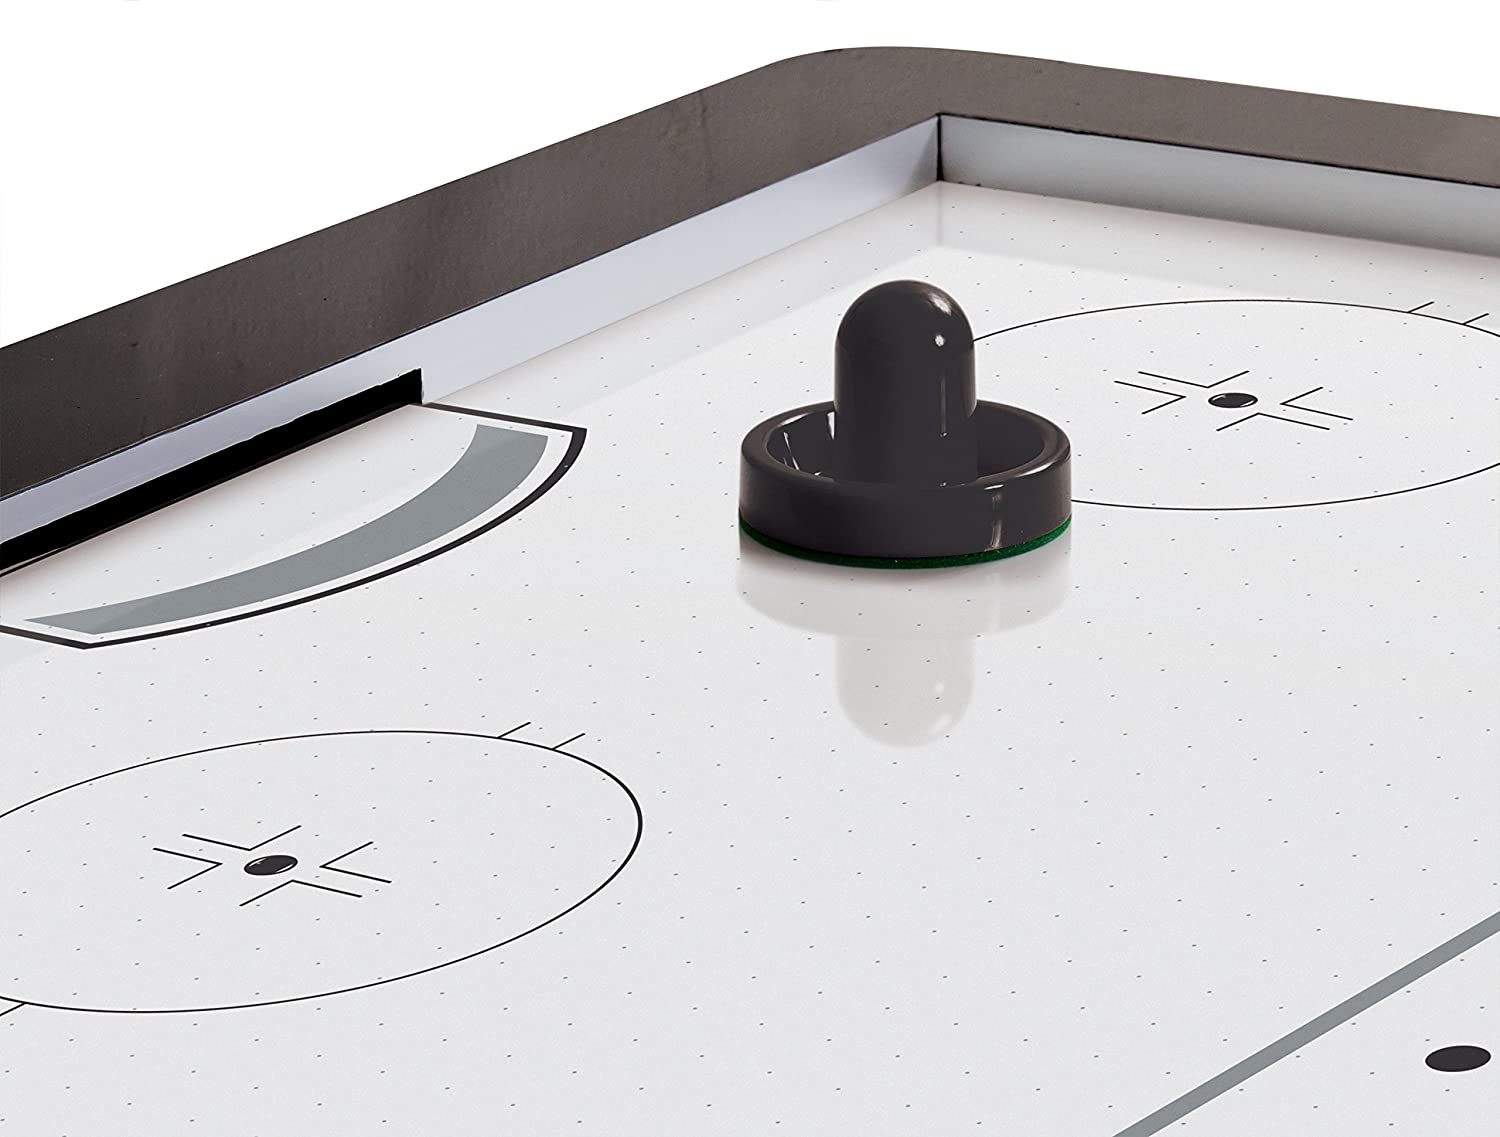 EastPoint Sports 84 Air Hockey Table Features